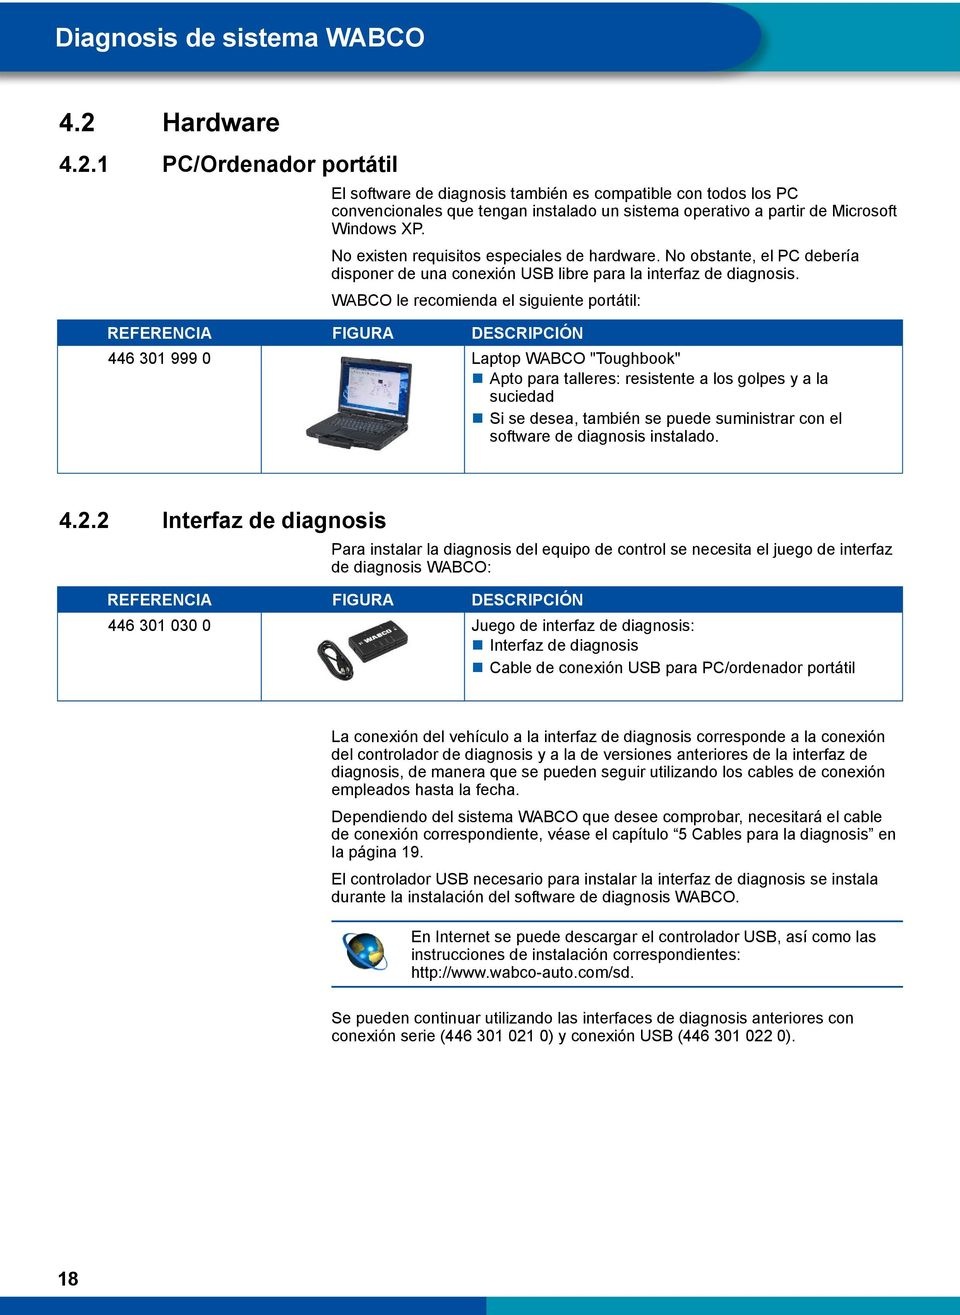 No existen requisitos especiales de hardware. No obstante, el PC debería disponer de una conexión USB libre para la interfaz de diagnosis.